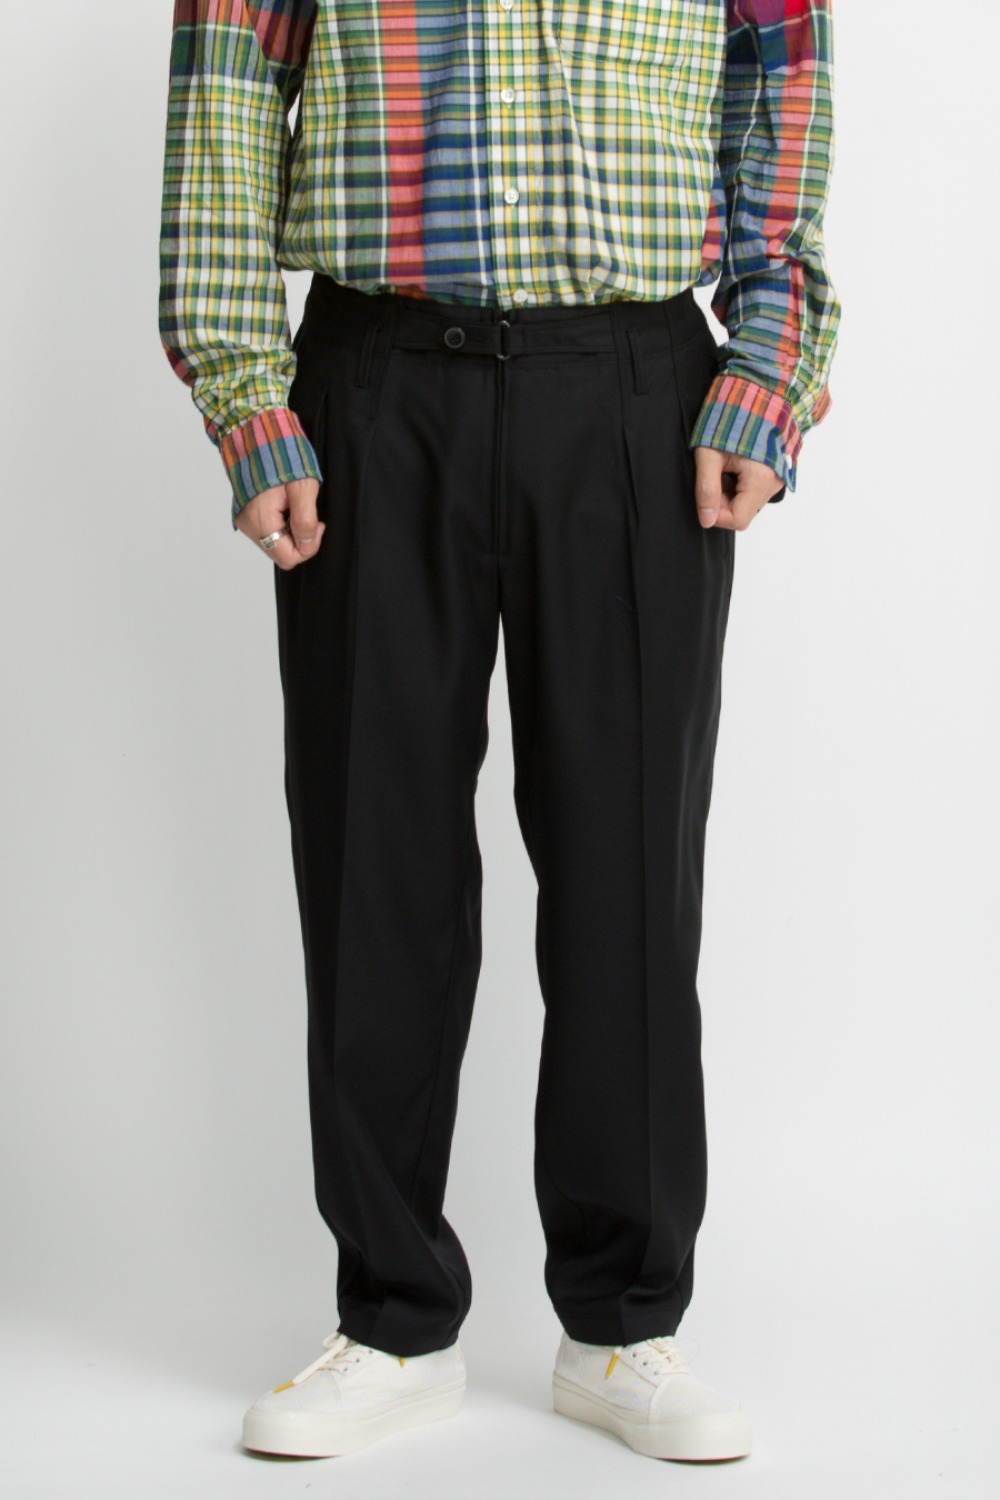 EXPLORER PANTS / BLACK WOOL